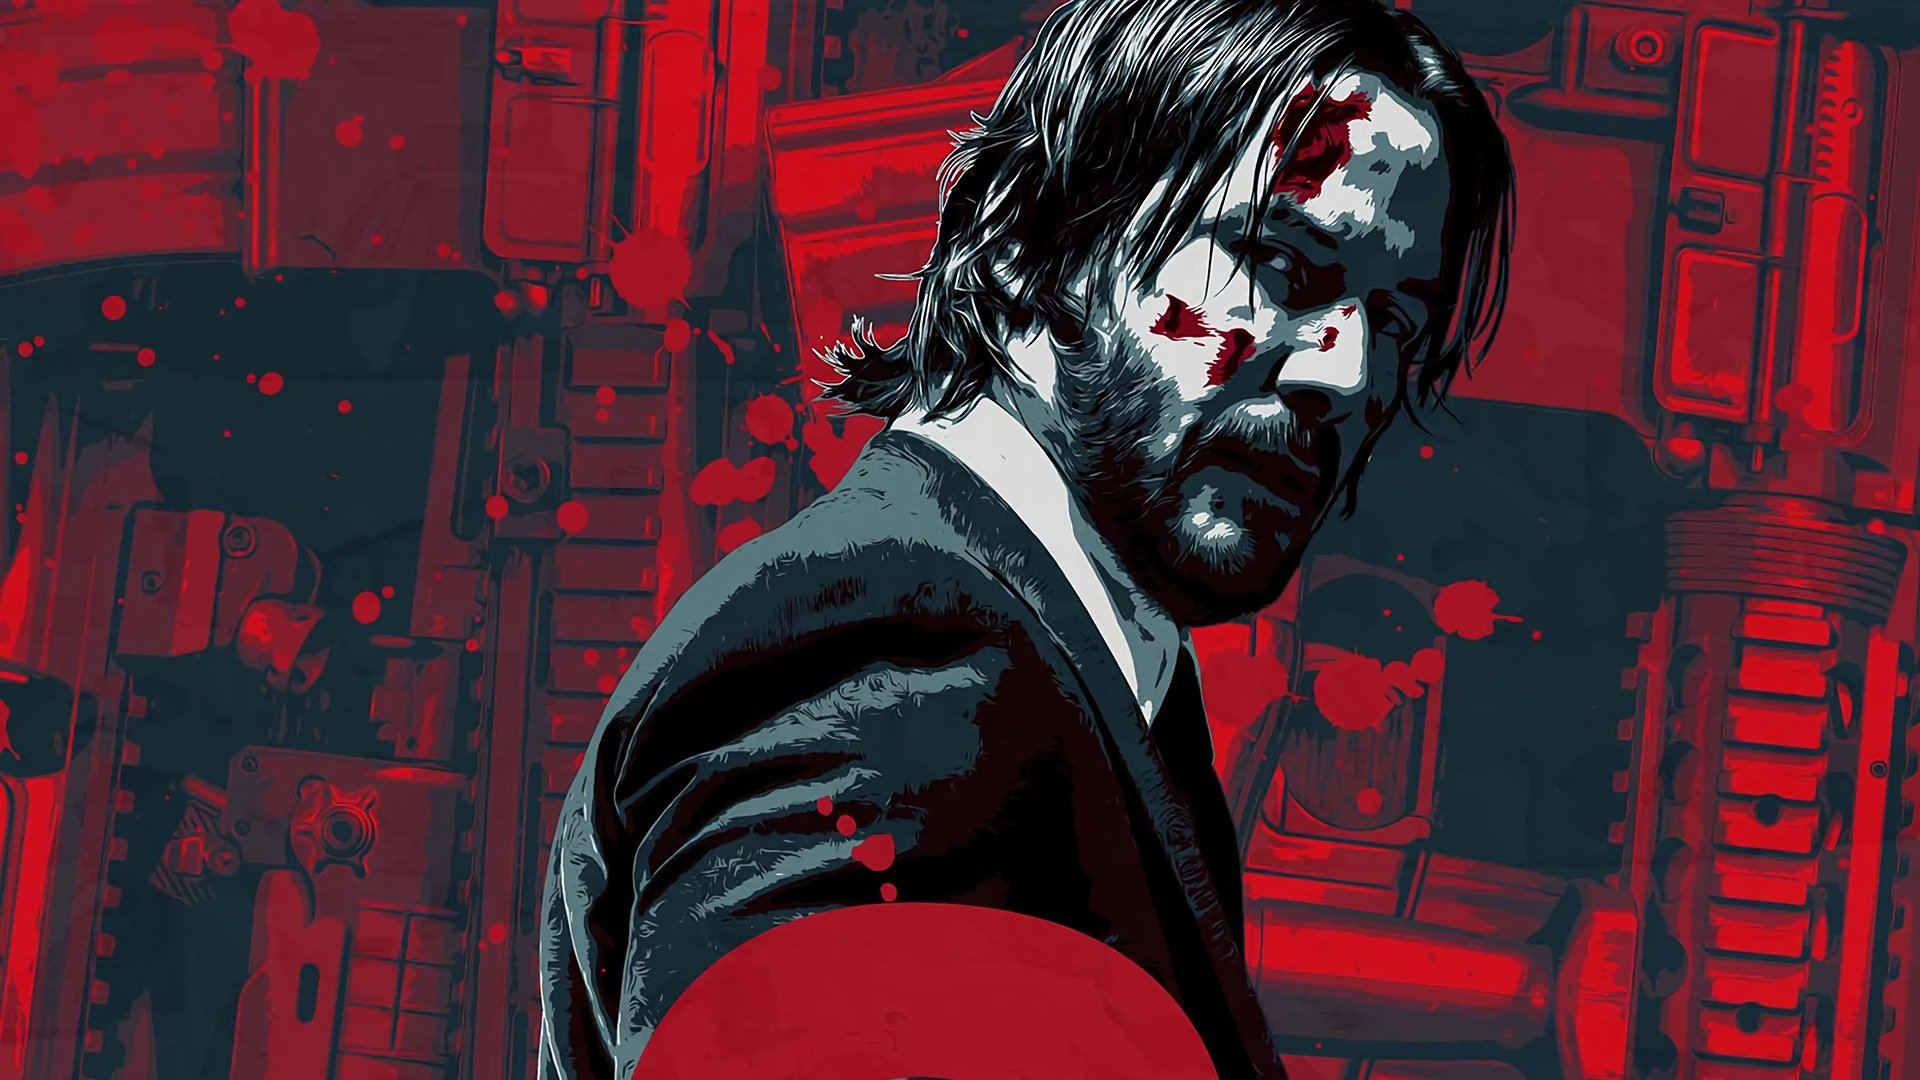 John Wick: Chapter 2 Full Movie Online